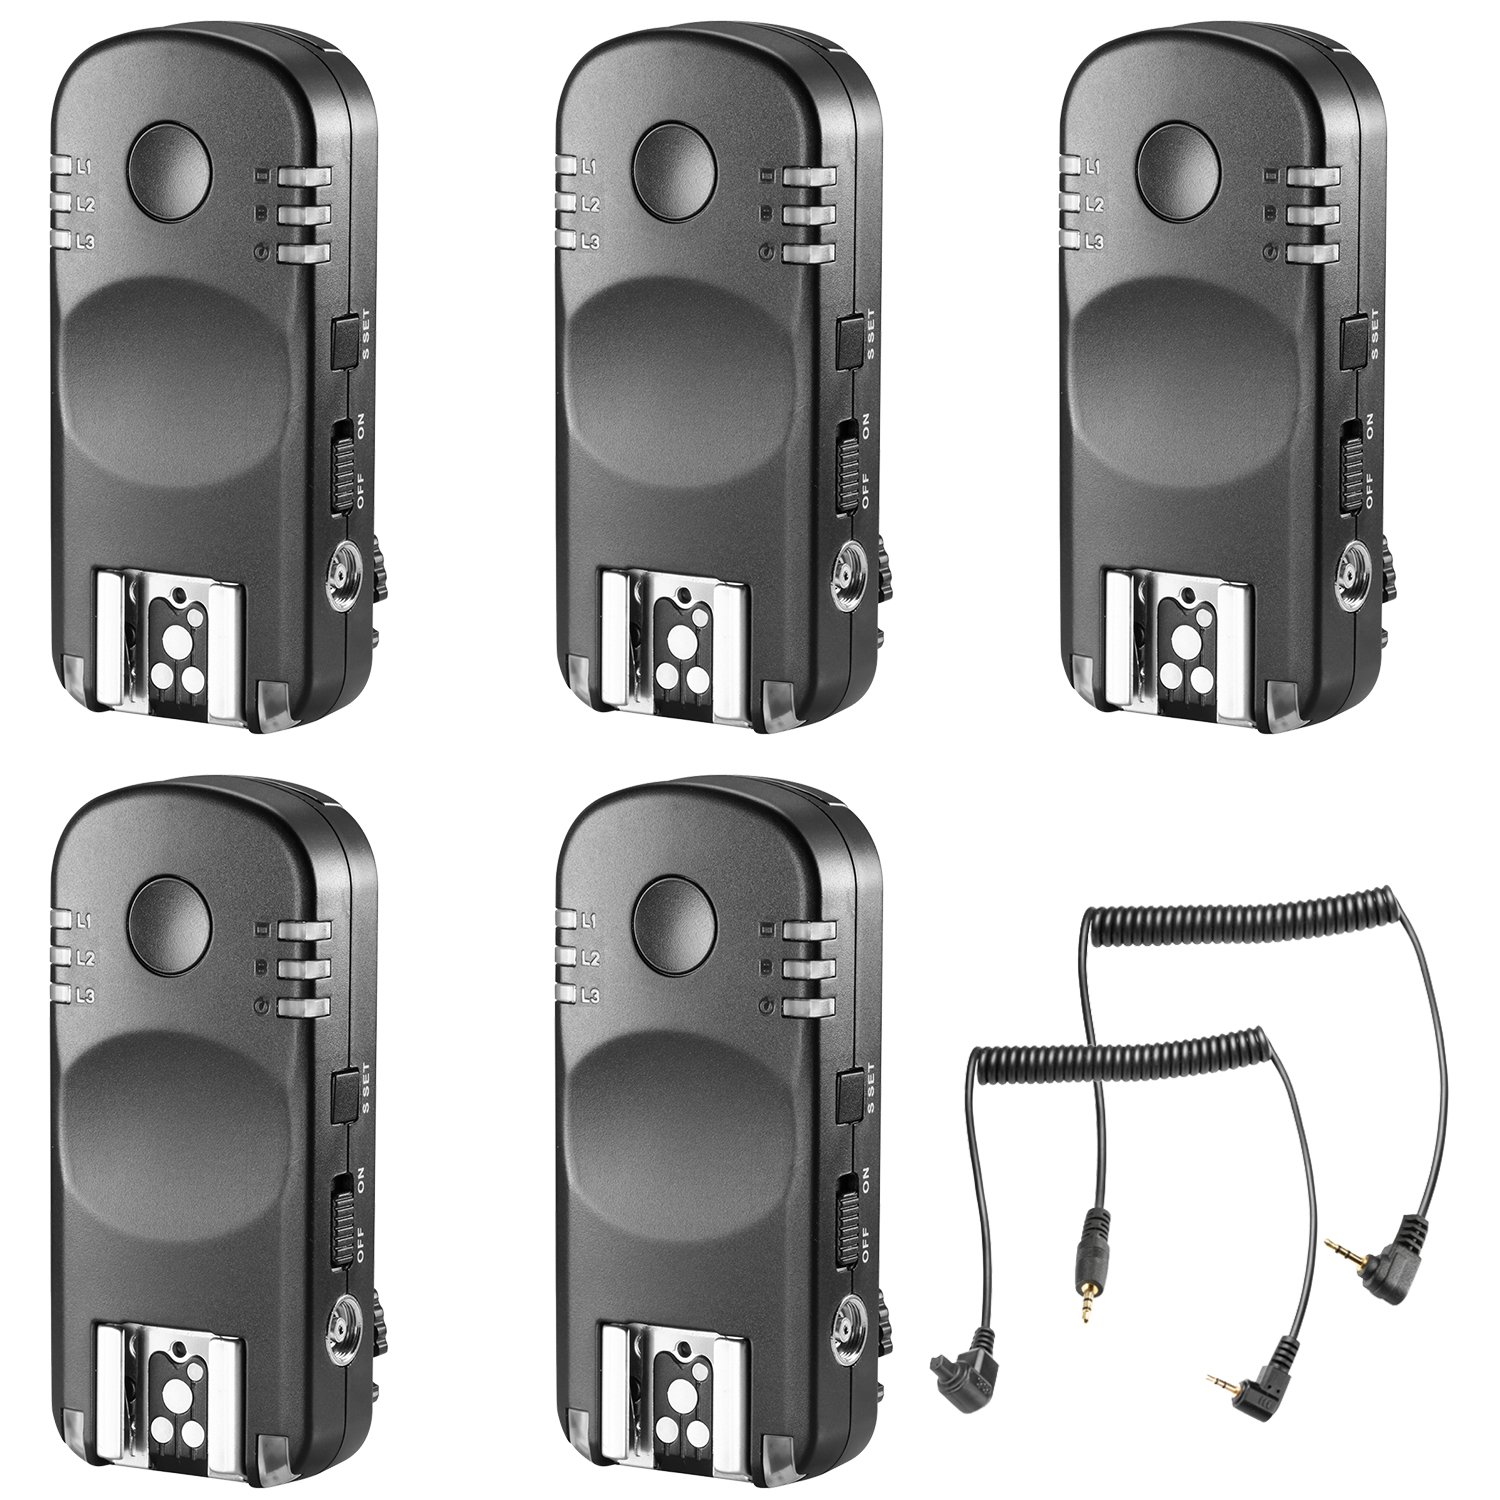 Neewer 5-Pack 2.4GHz 7-Channel Wireless Remote Flash Trigger Transceivers with C1 and C3 Shutter Cable for Canon 1D Mark II III IV 5D Mark II III IV 1100D 1000D 700D 650D 600D 500D 450D 100D 60D by Neewer